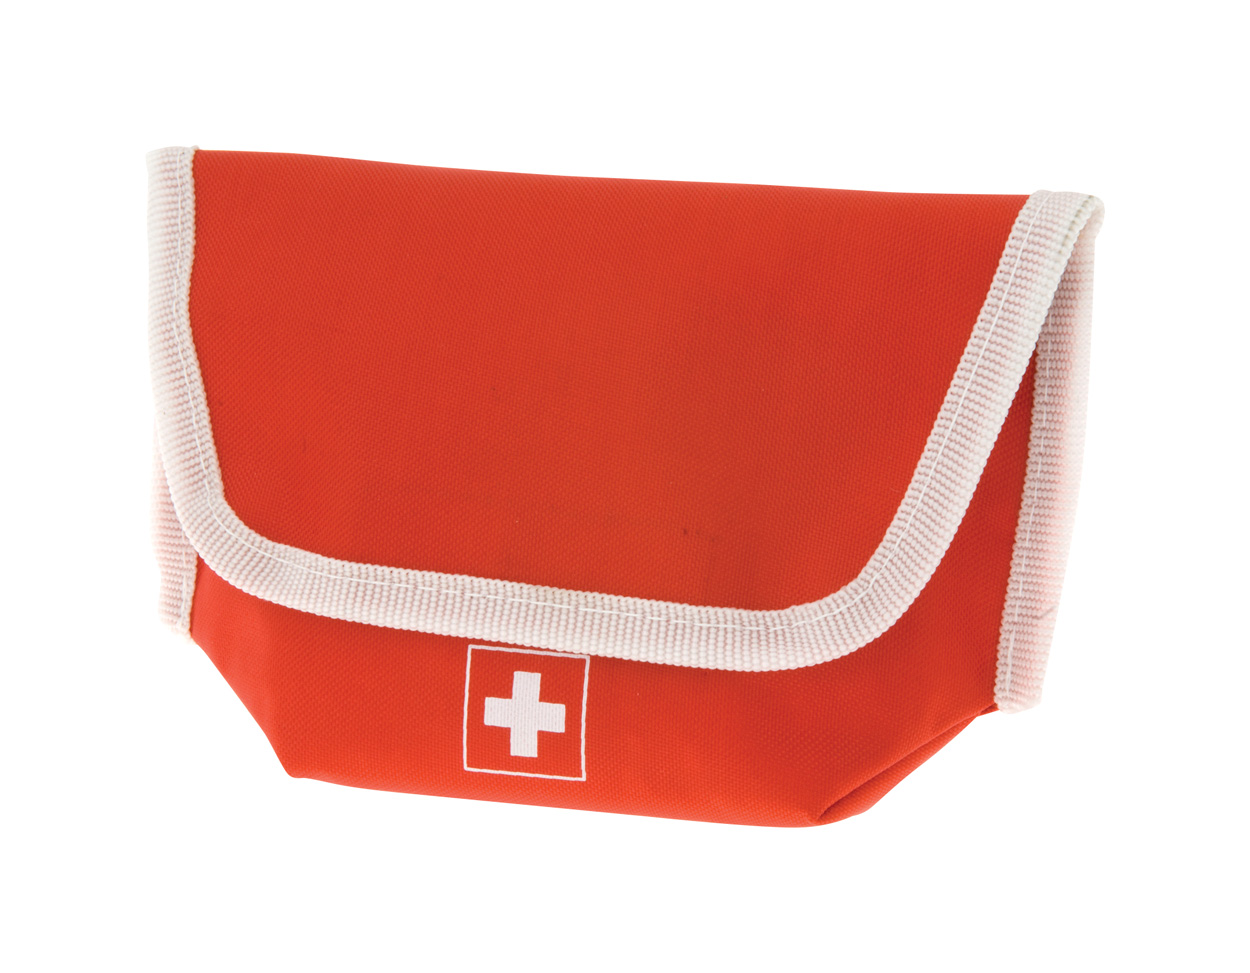 Redcross first aid kit